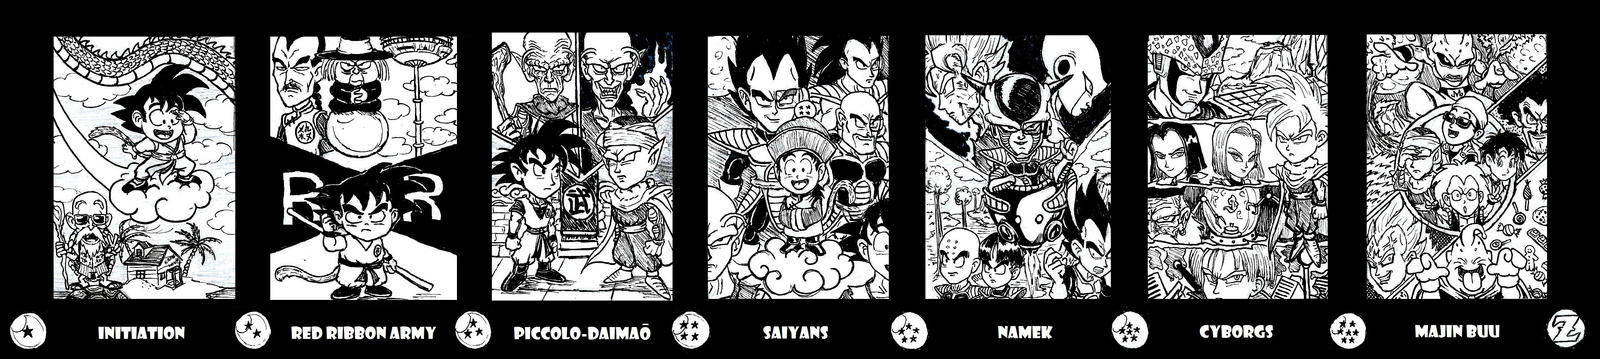 dragon_ball__story_arcs_by_devilkais_d6s